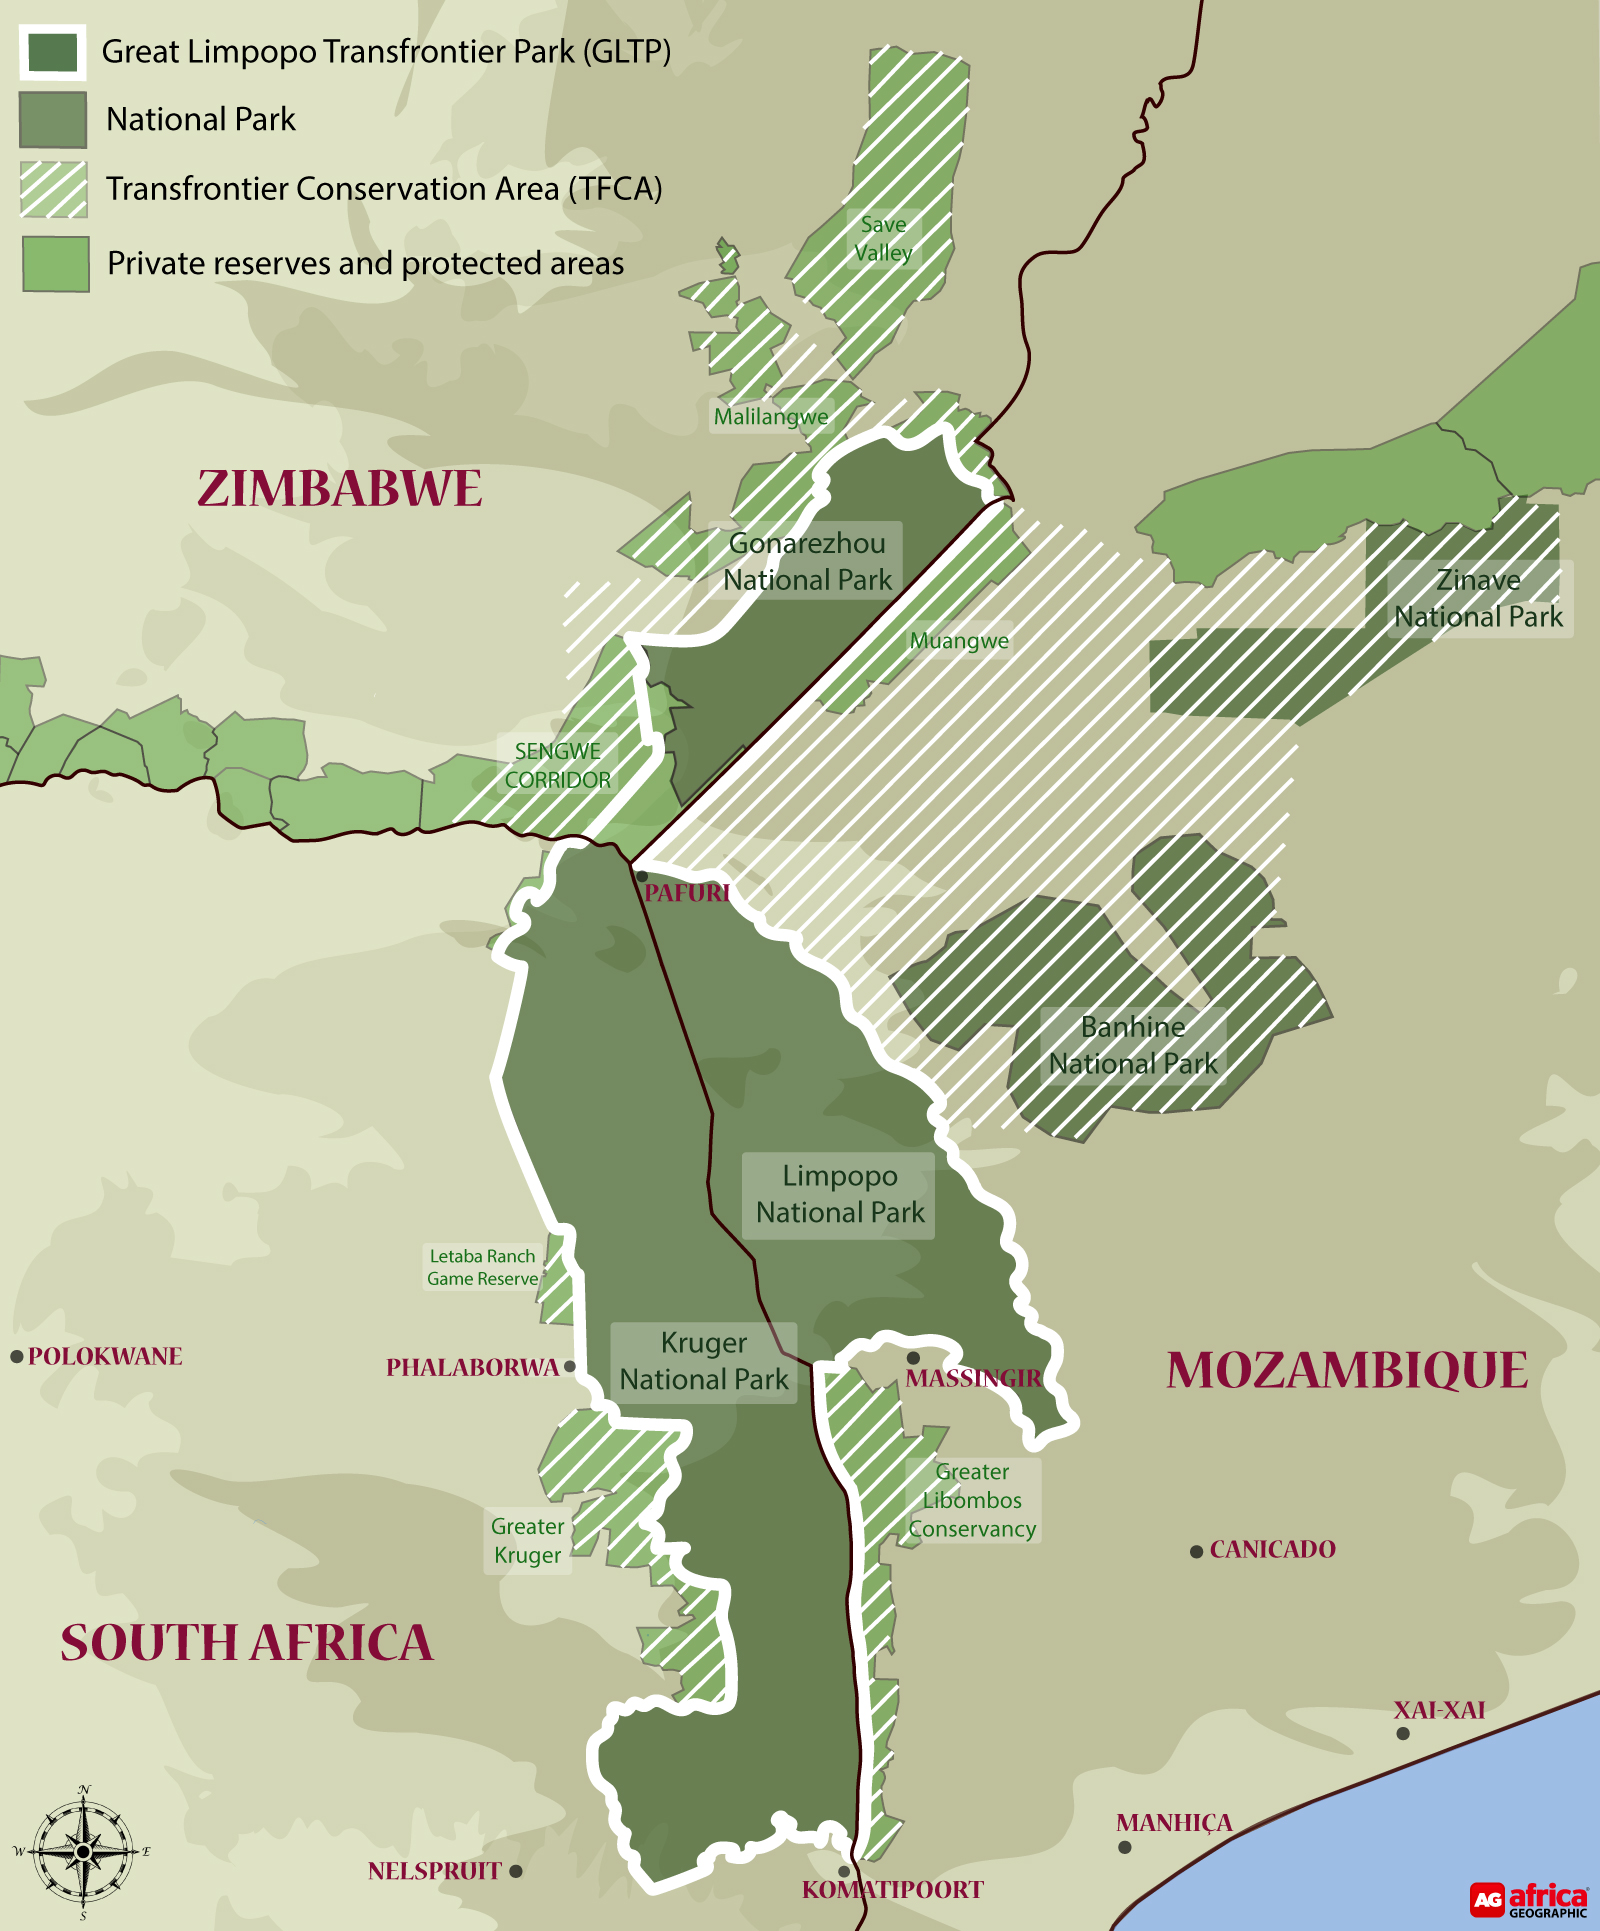 Map of Great Limpopo Transfrontier Park